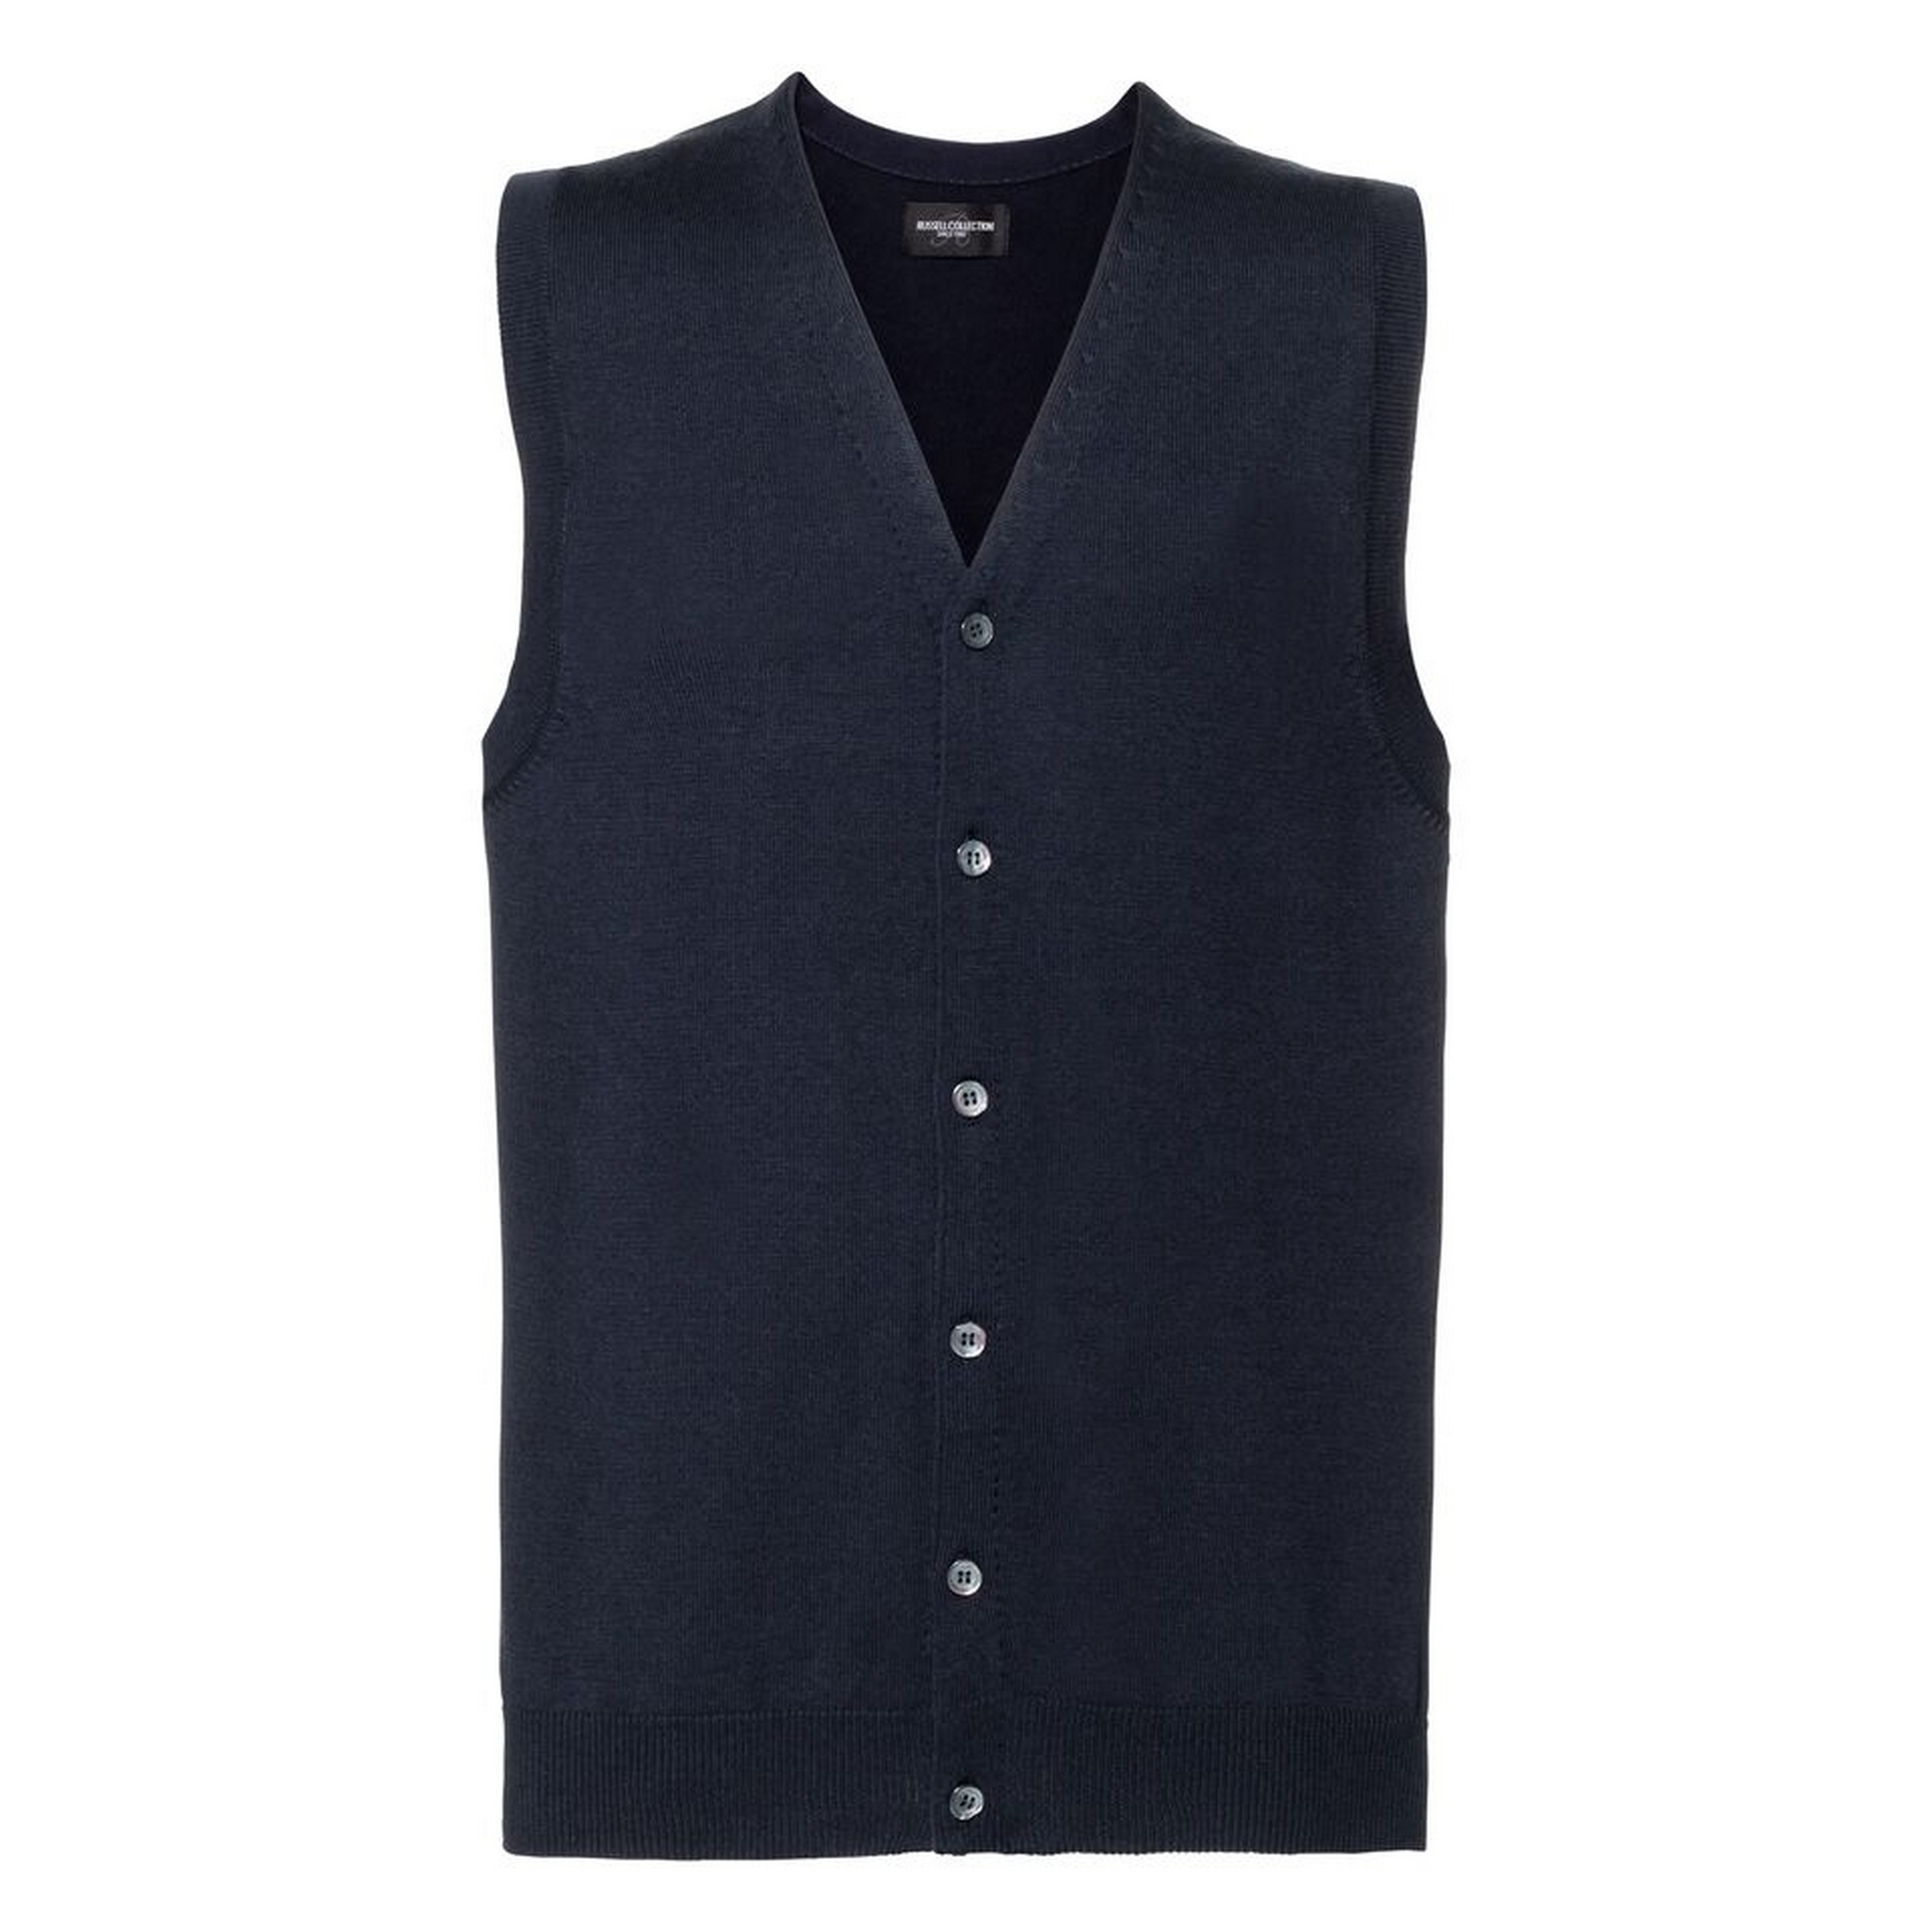 Russell Collection Mens V-neck Sleeveless Knitted Cardigan (L) (French Navy)